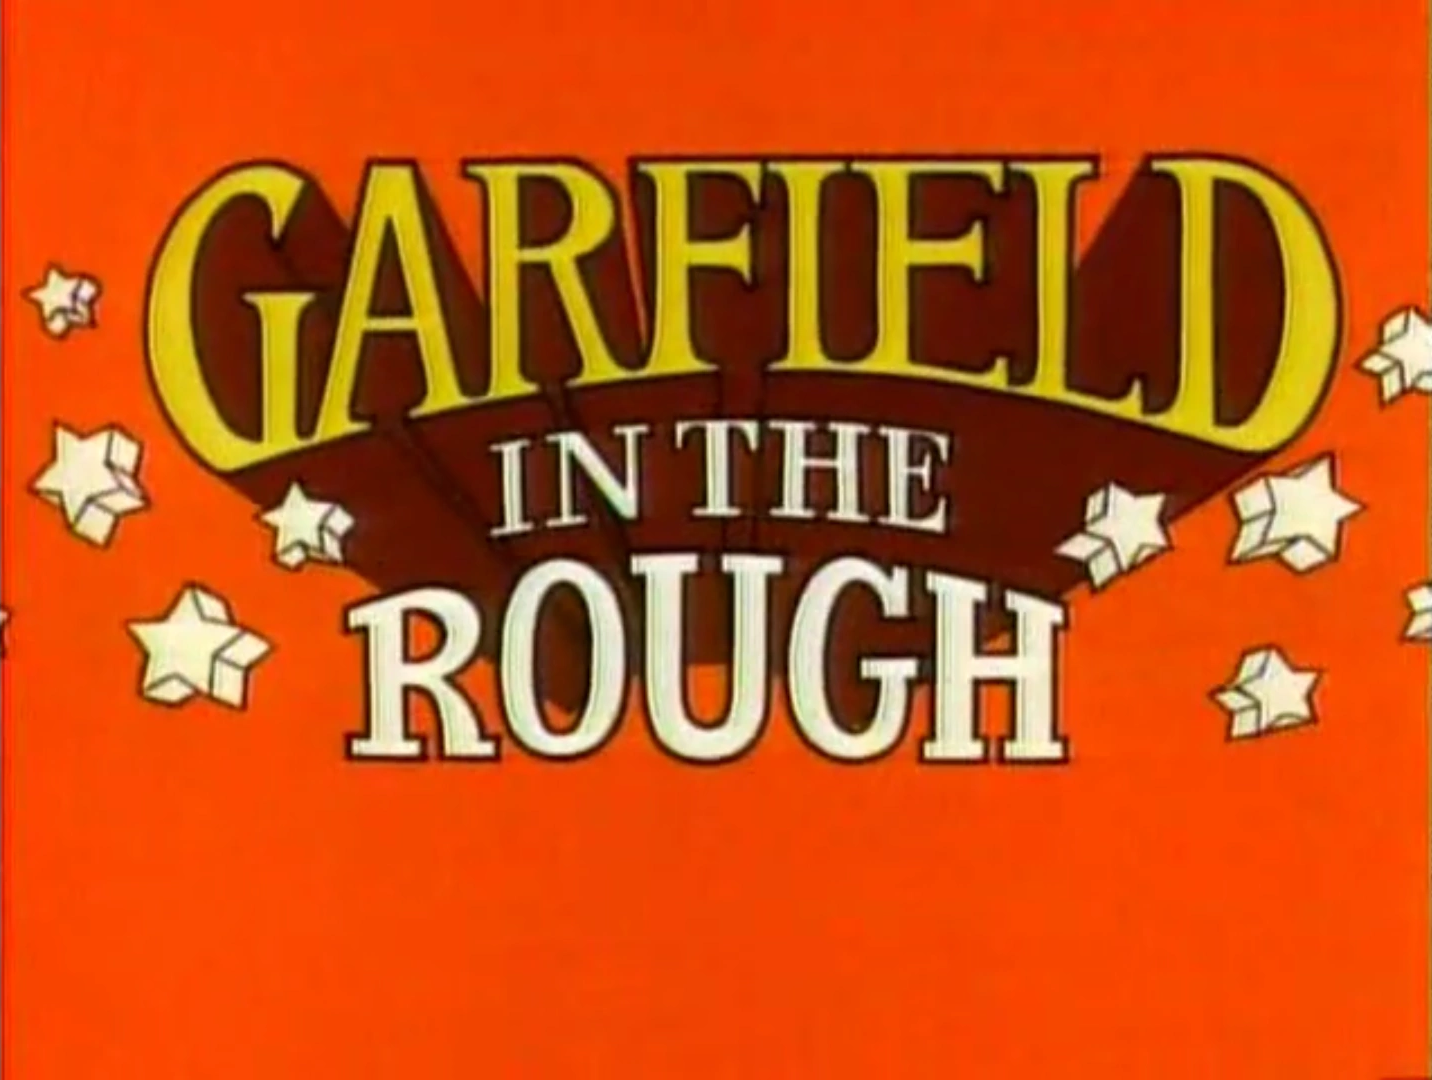 Garfield in the Rough credits